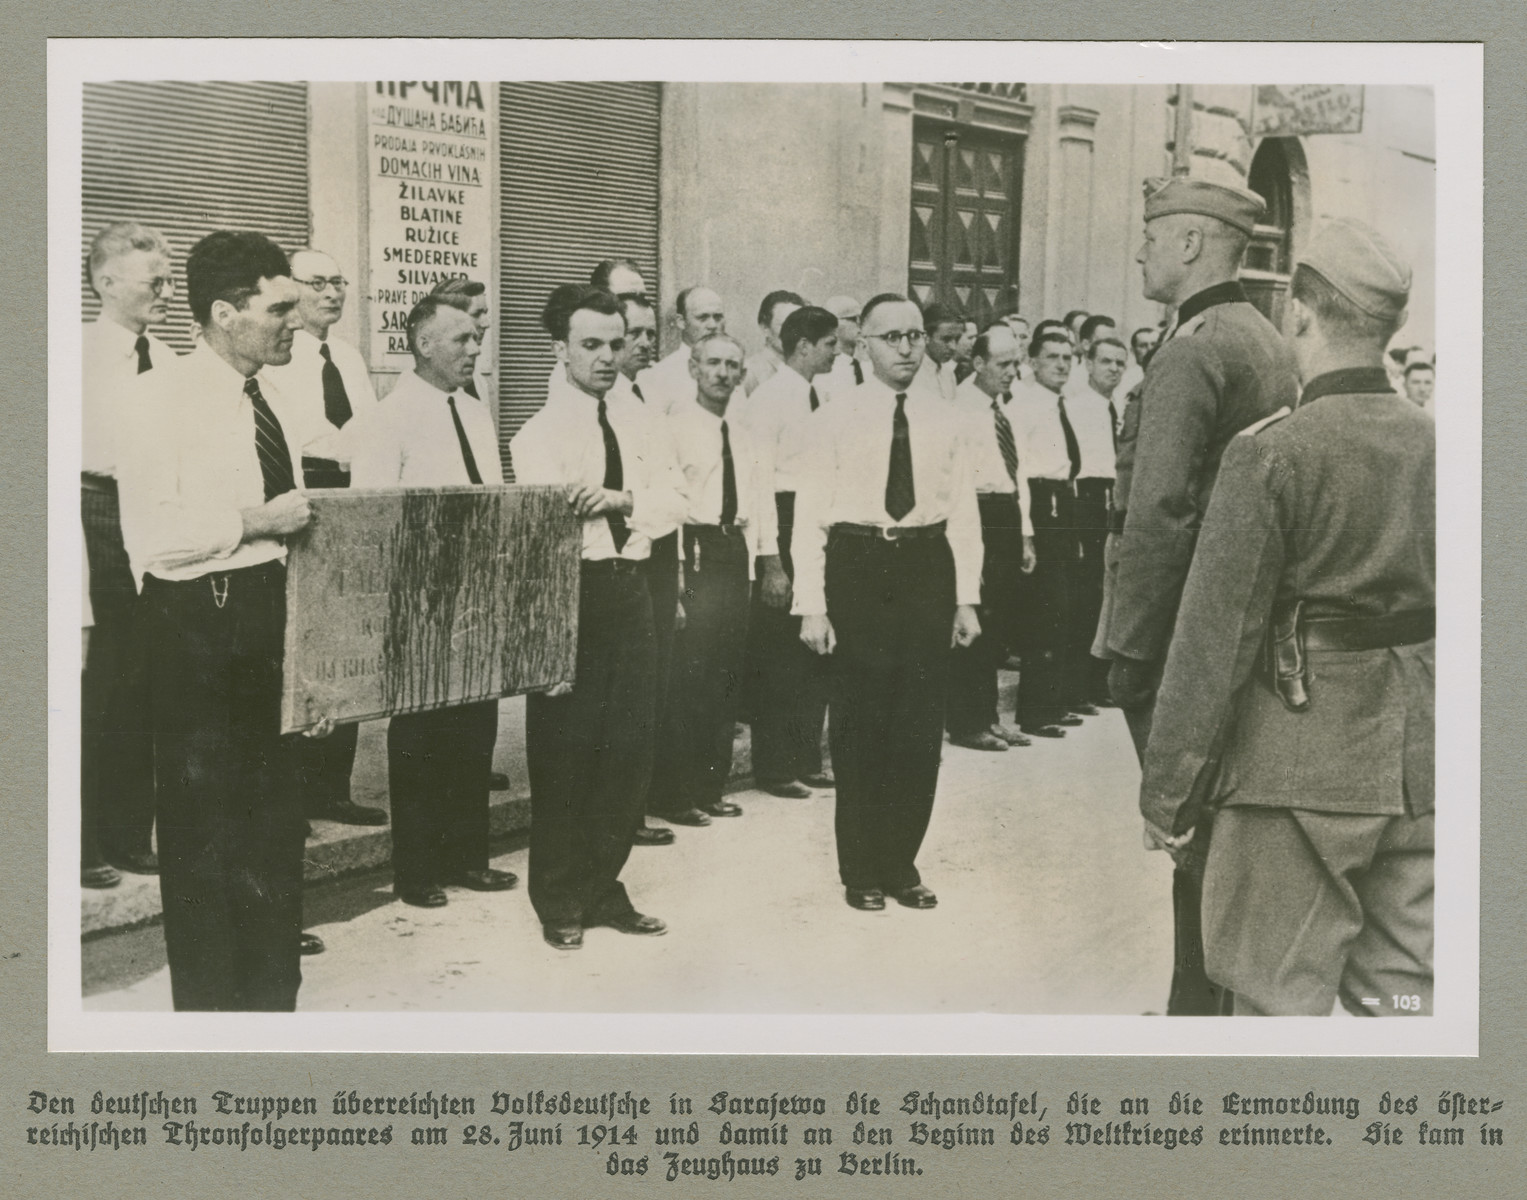 Ethnic Germans greet German forces in Sarajevo.   The original caption reads: German forces were presented the infamous slab commemorating the murder of the Crown Prince and Princess of Austria on June 28, 1914, which led to the beginning of the First World War.  The slab was conferred to the Zeughaus in Berlin.